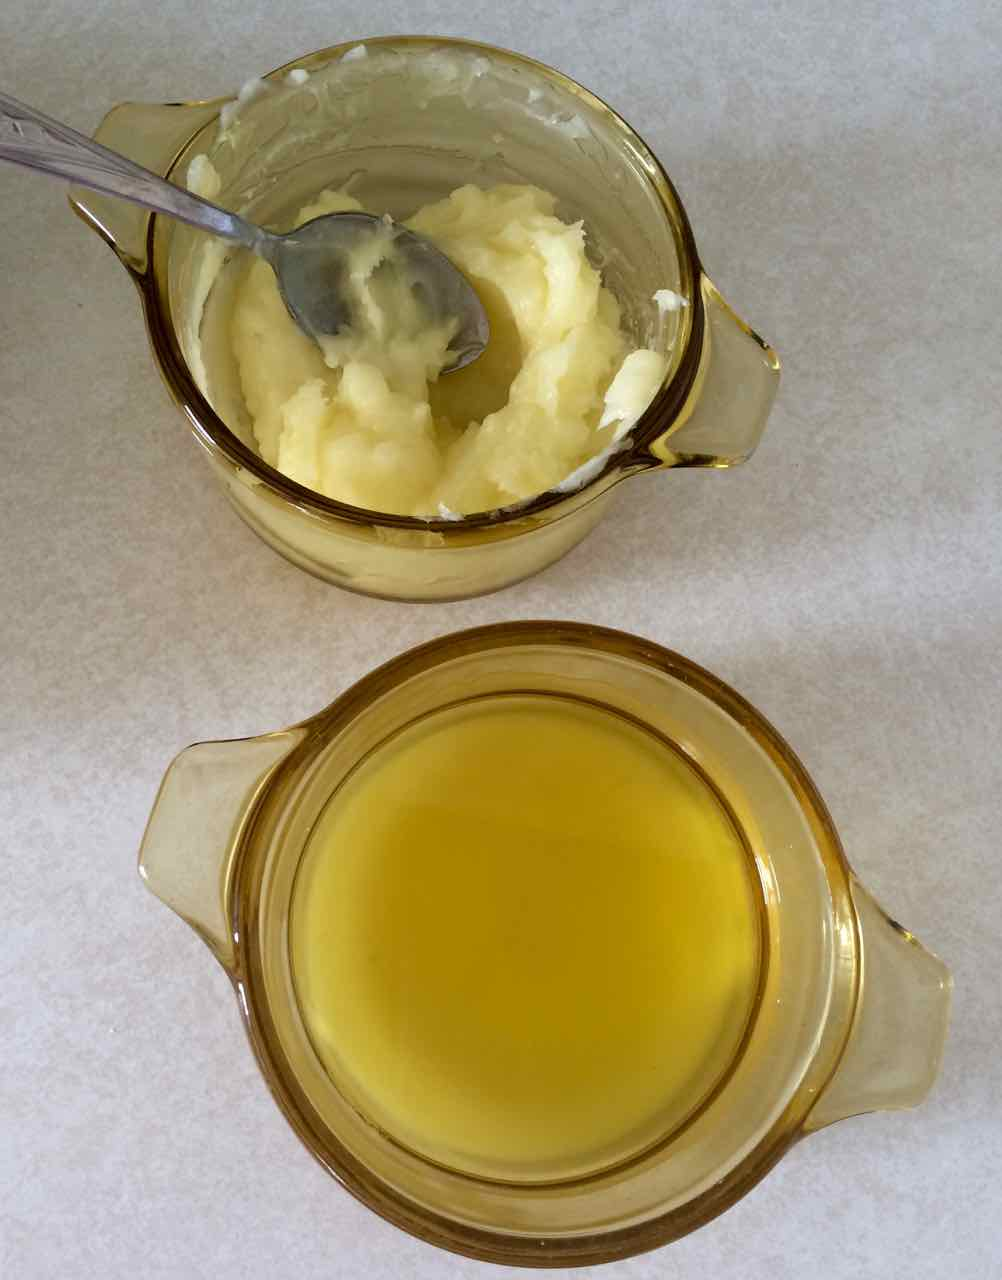 Top bowl is once it set. Bottom bowl is fresh from the pan/jar. It looked exactly like olive oil coming out and then turned to a nice, thick body butter.